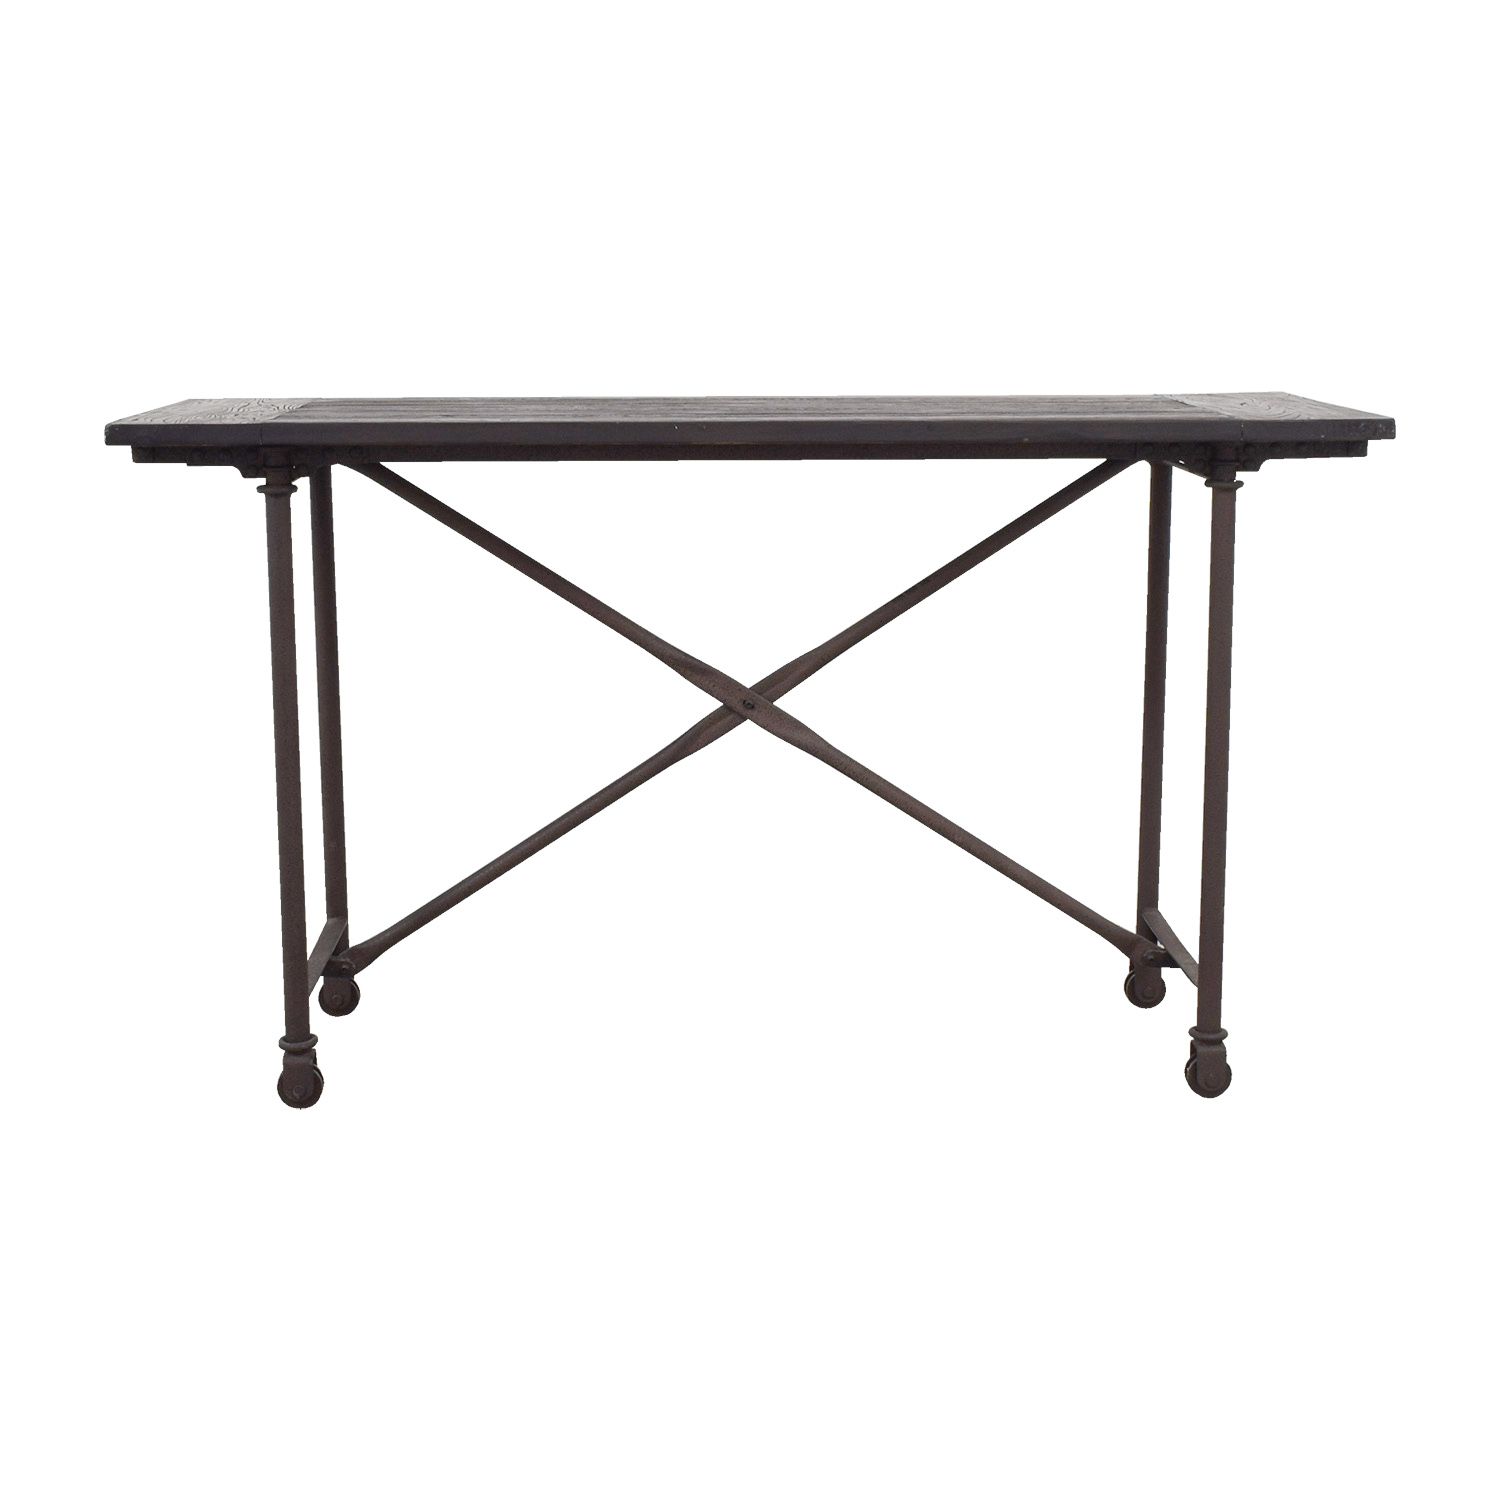 Restoration Hardware Flatiron Bar Table